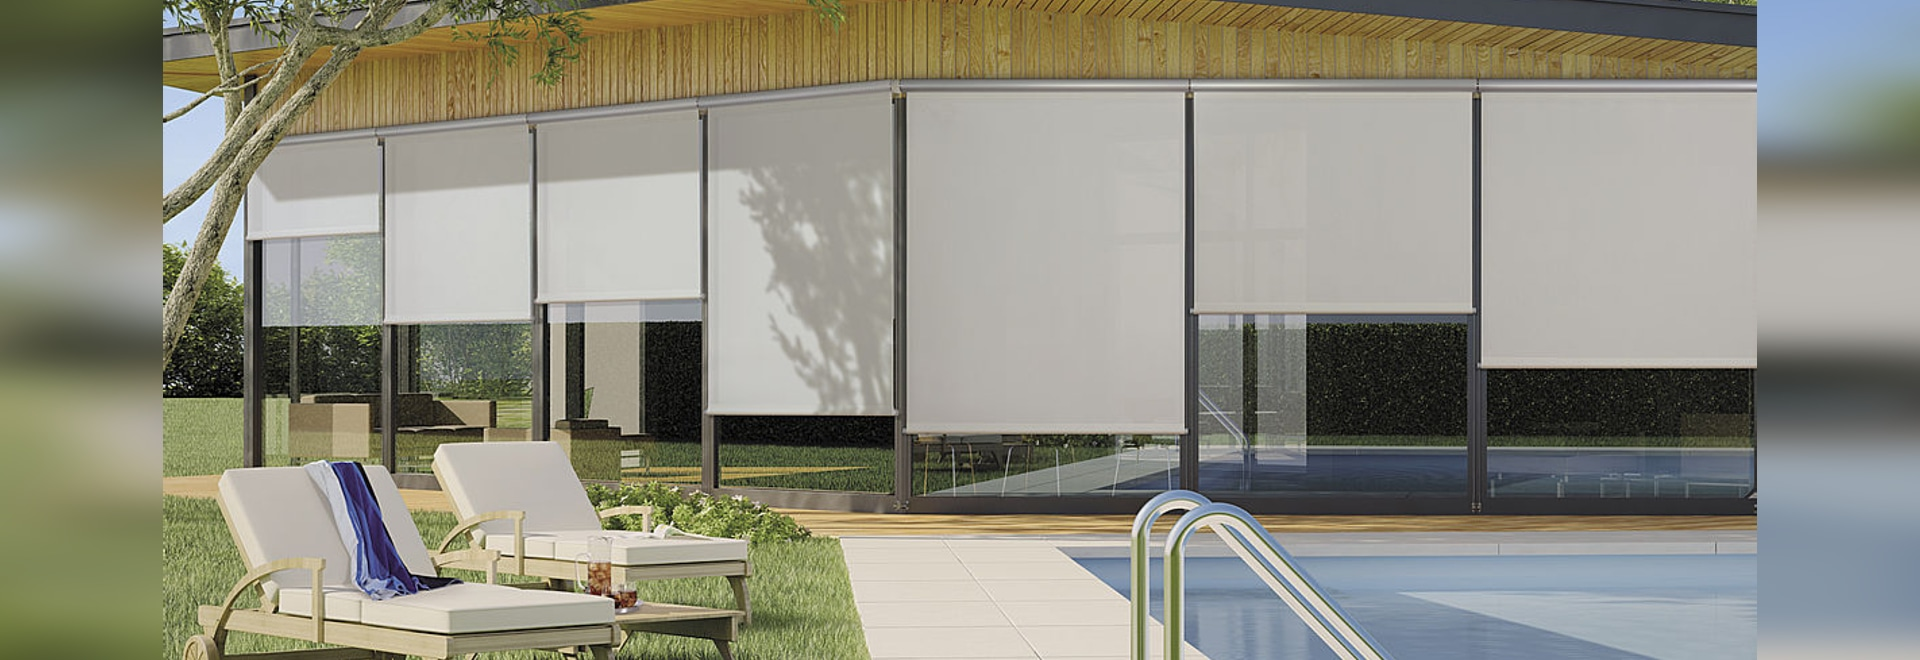 MOTOR OPERATED ROLLER BLINDS WITH HEADBOX